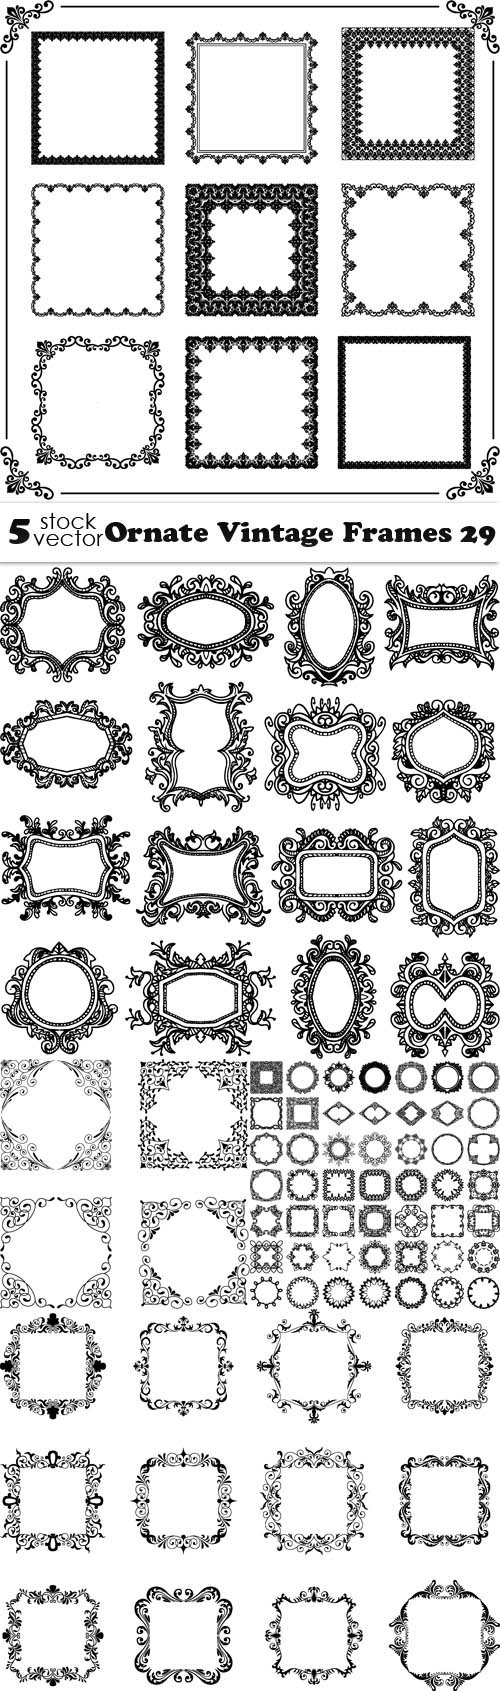 Vectors - Ornate Vintage Frames 29